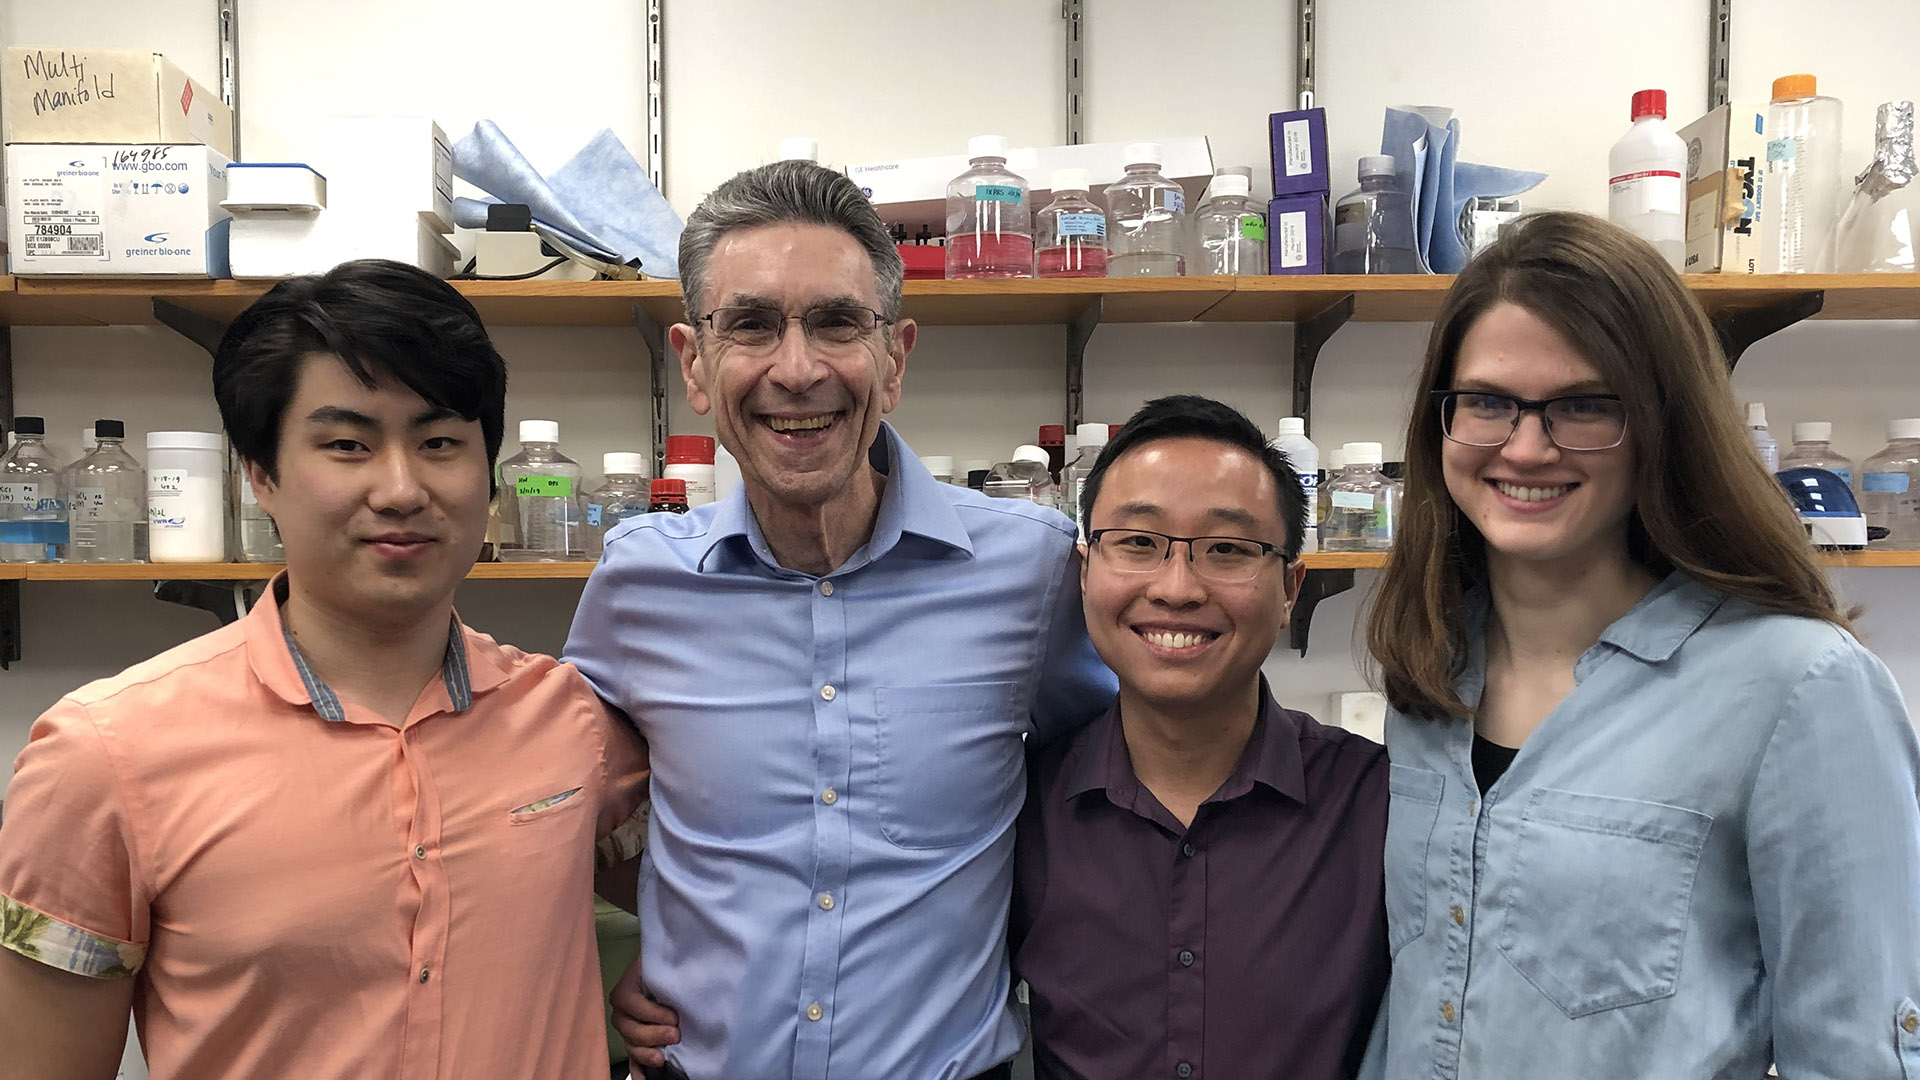 Dr. Robert Lefkowitz in his lab with his young colleagues.